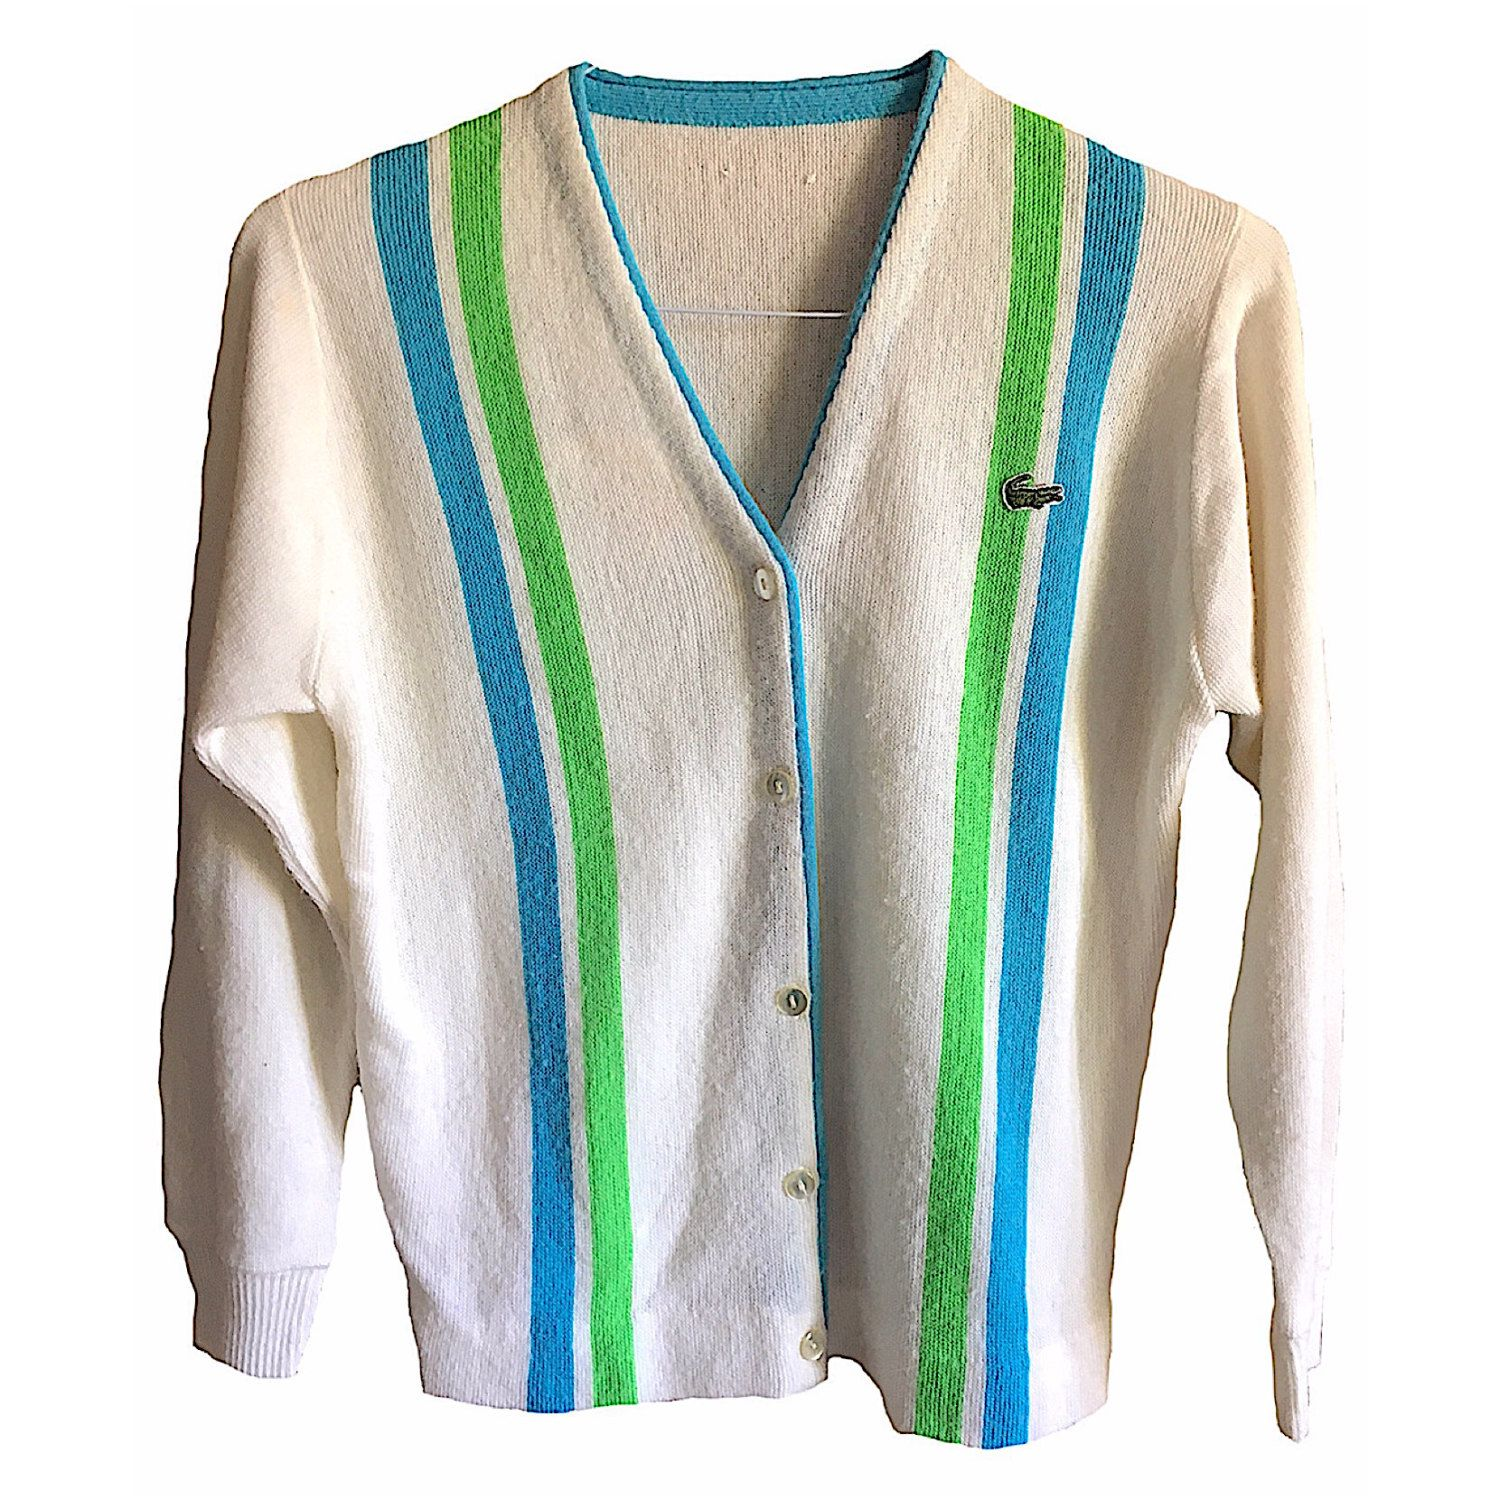 Lacoste Cardigan sweater v-neck alligator vintage mens womens ...